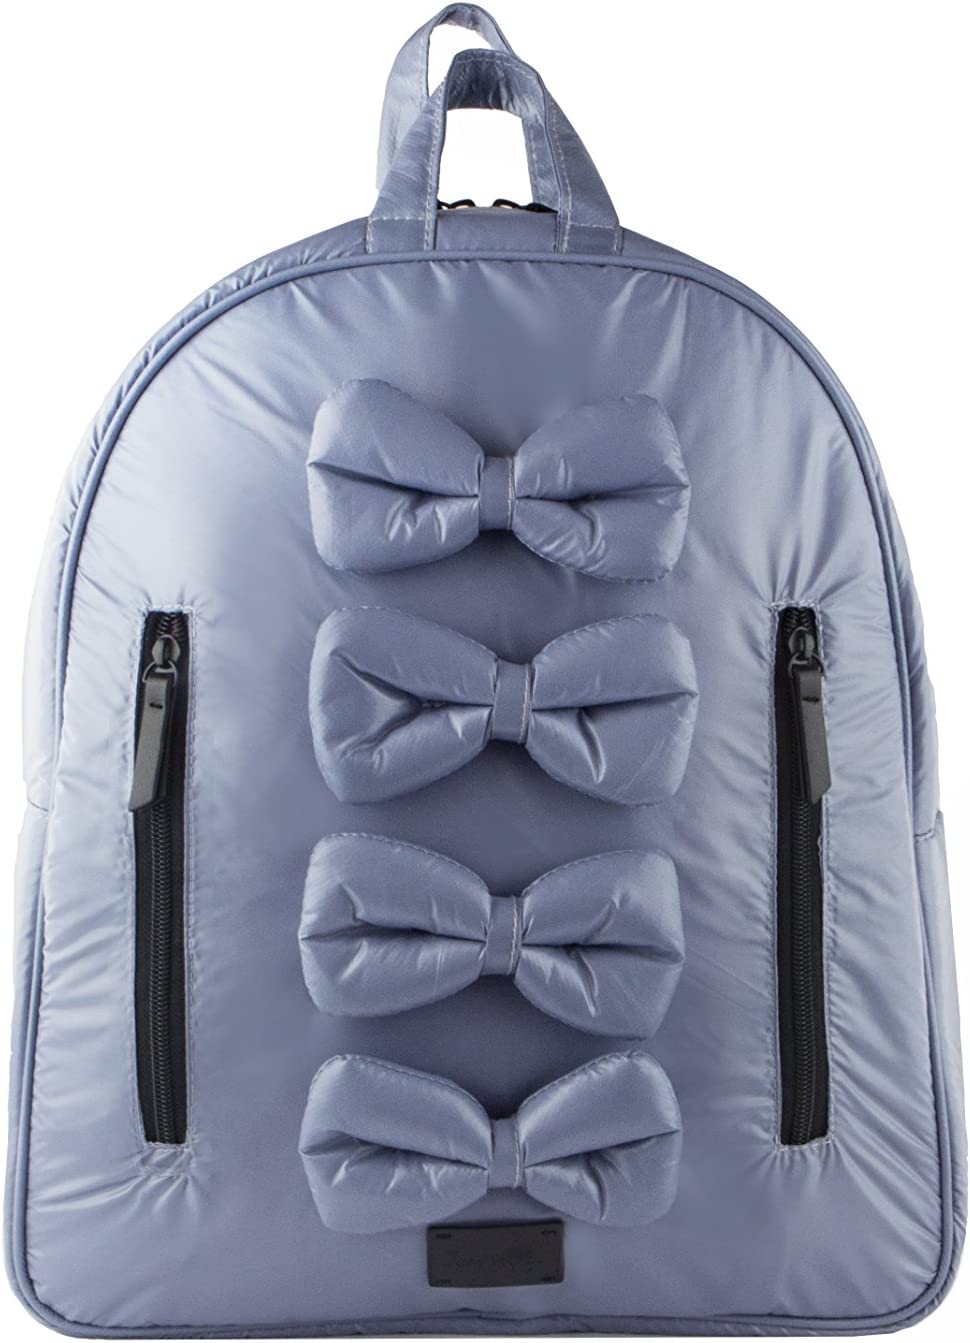 7AM Voyage MIDI Bows Backpack Toddlers Kids and Teens Haze Laptop School Backpack